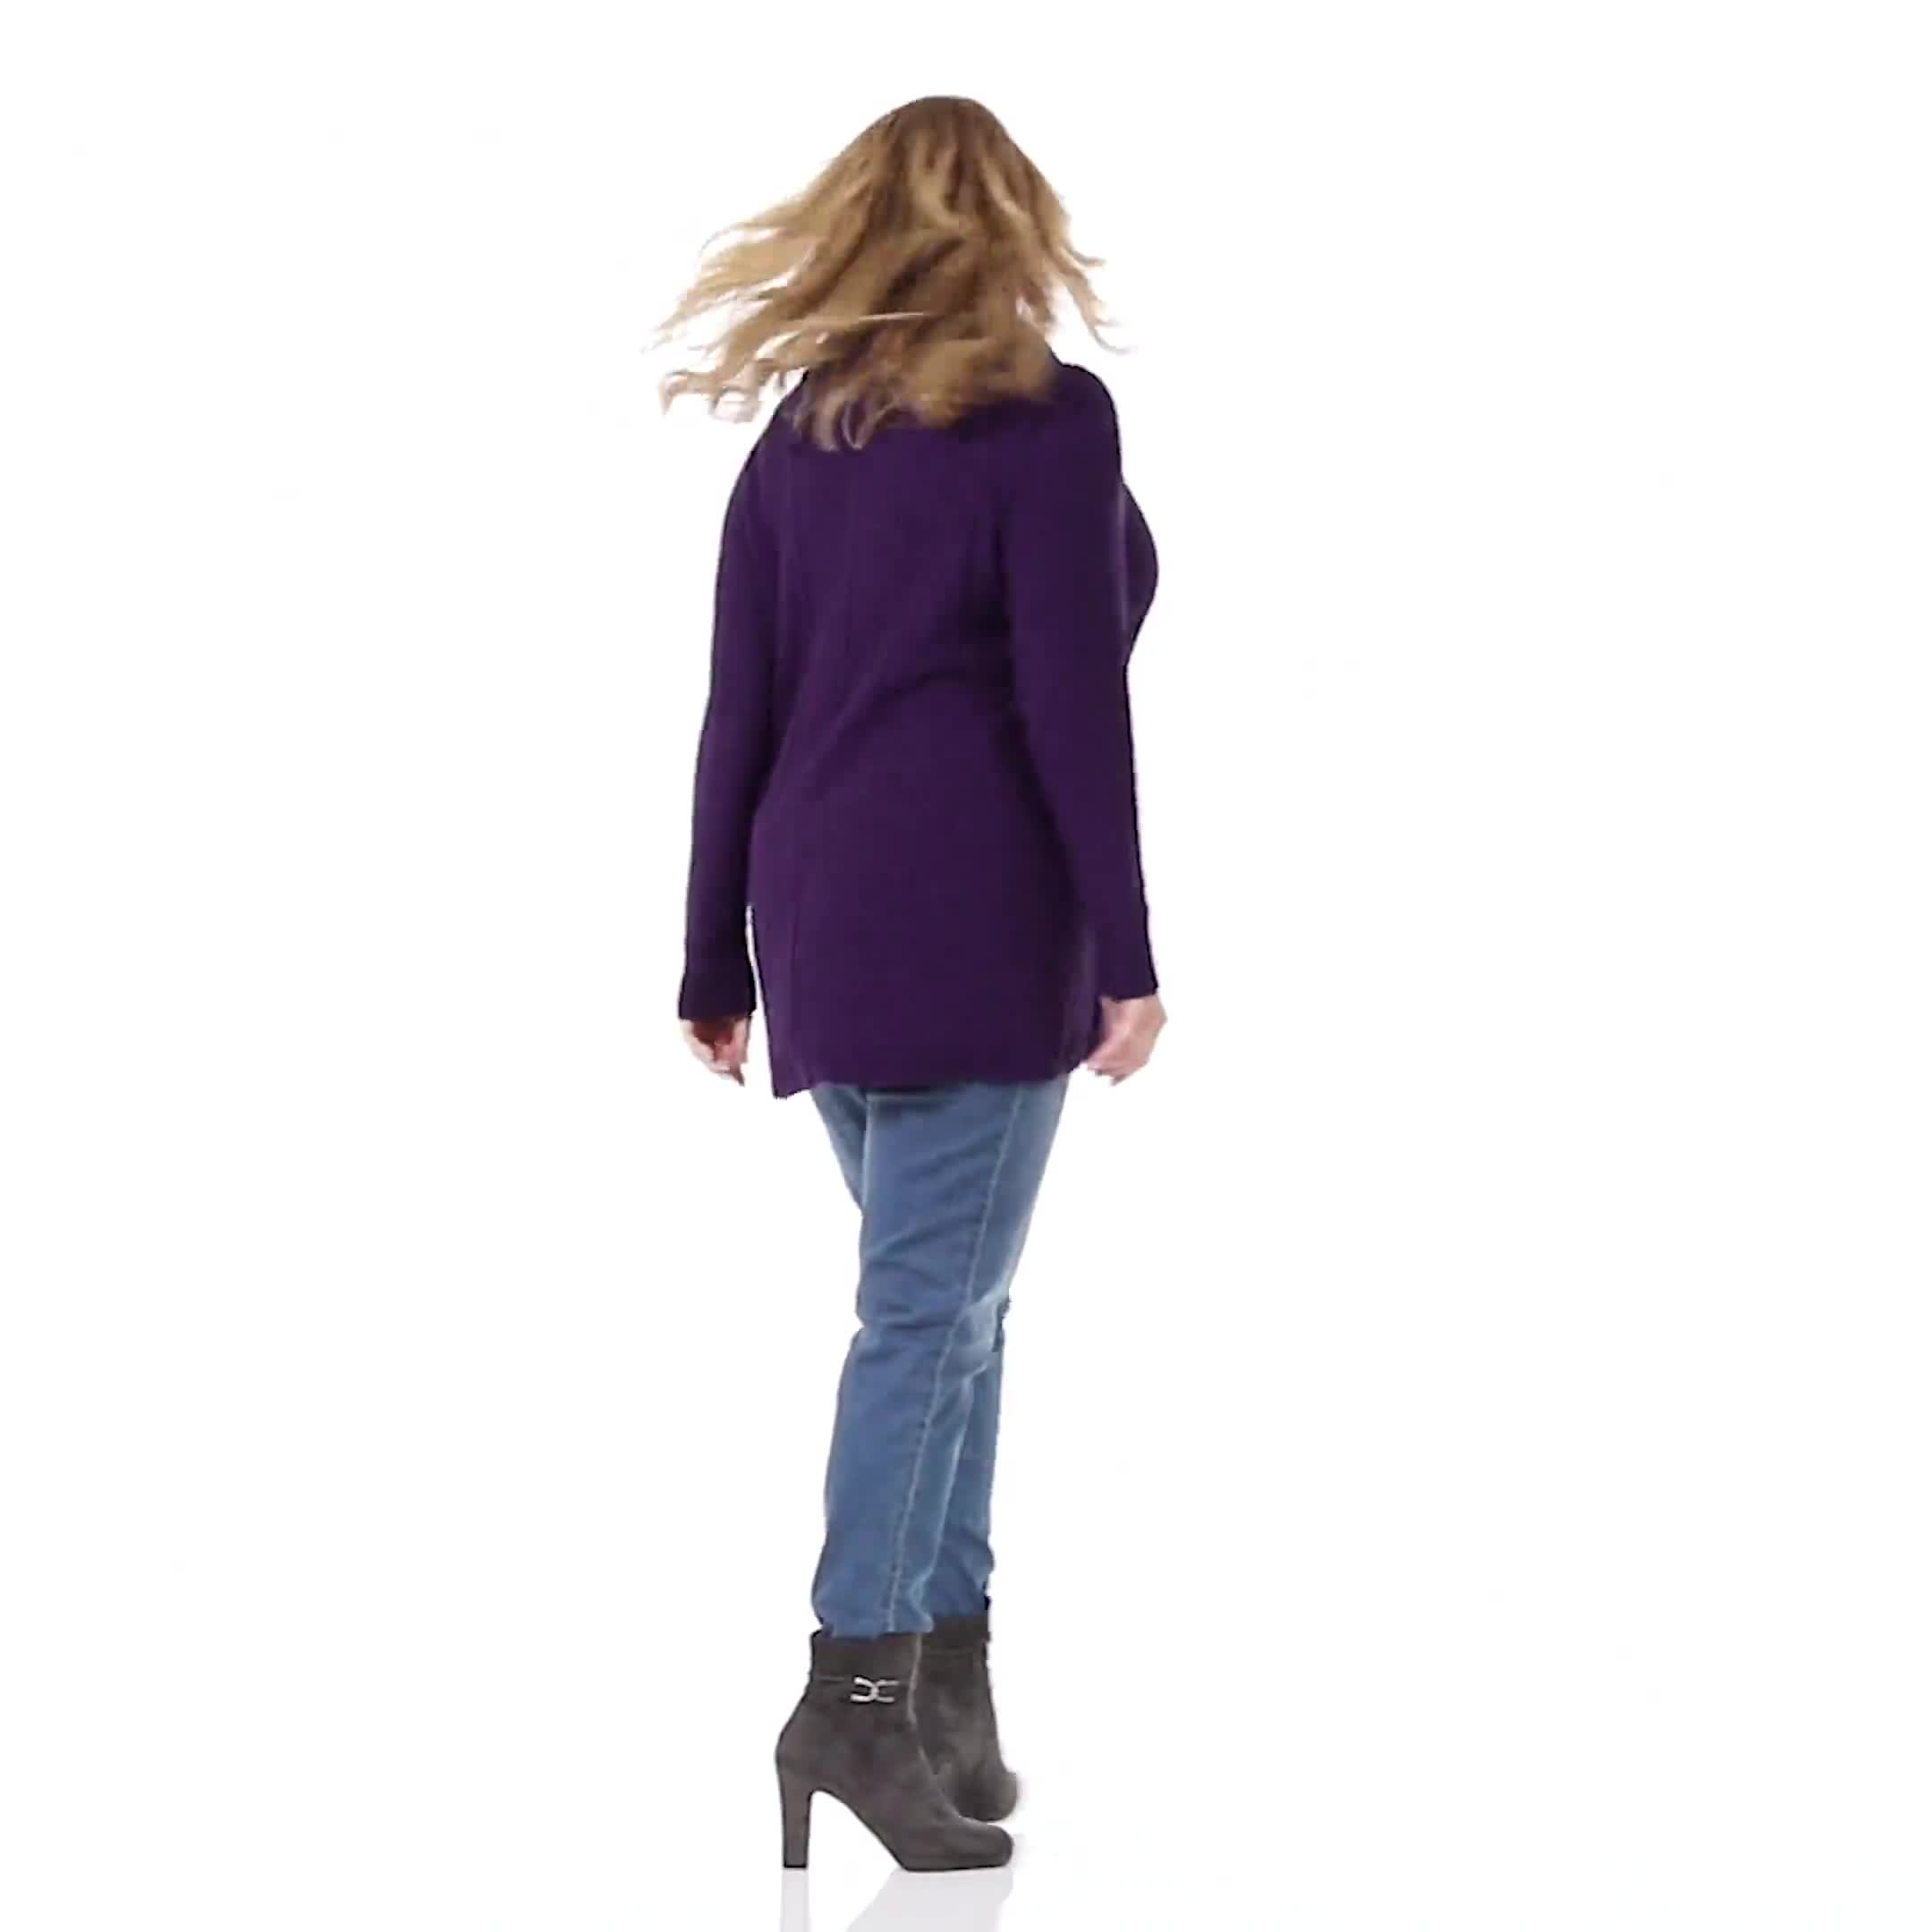 Cowl Neck Fit & Flare Sweater - Video